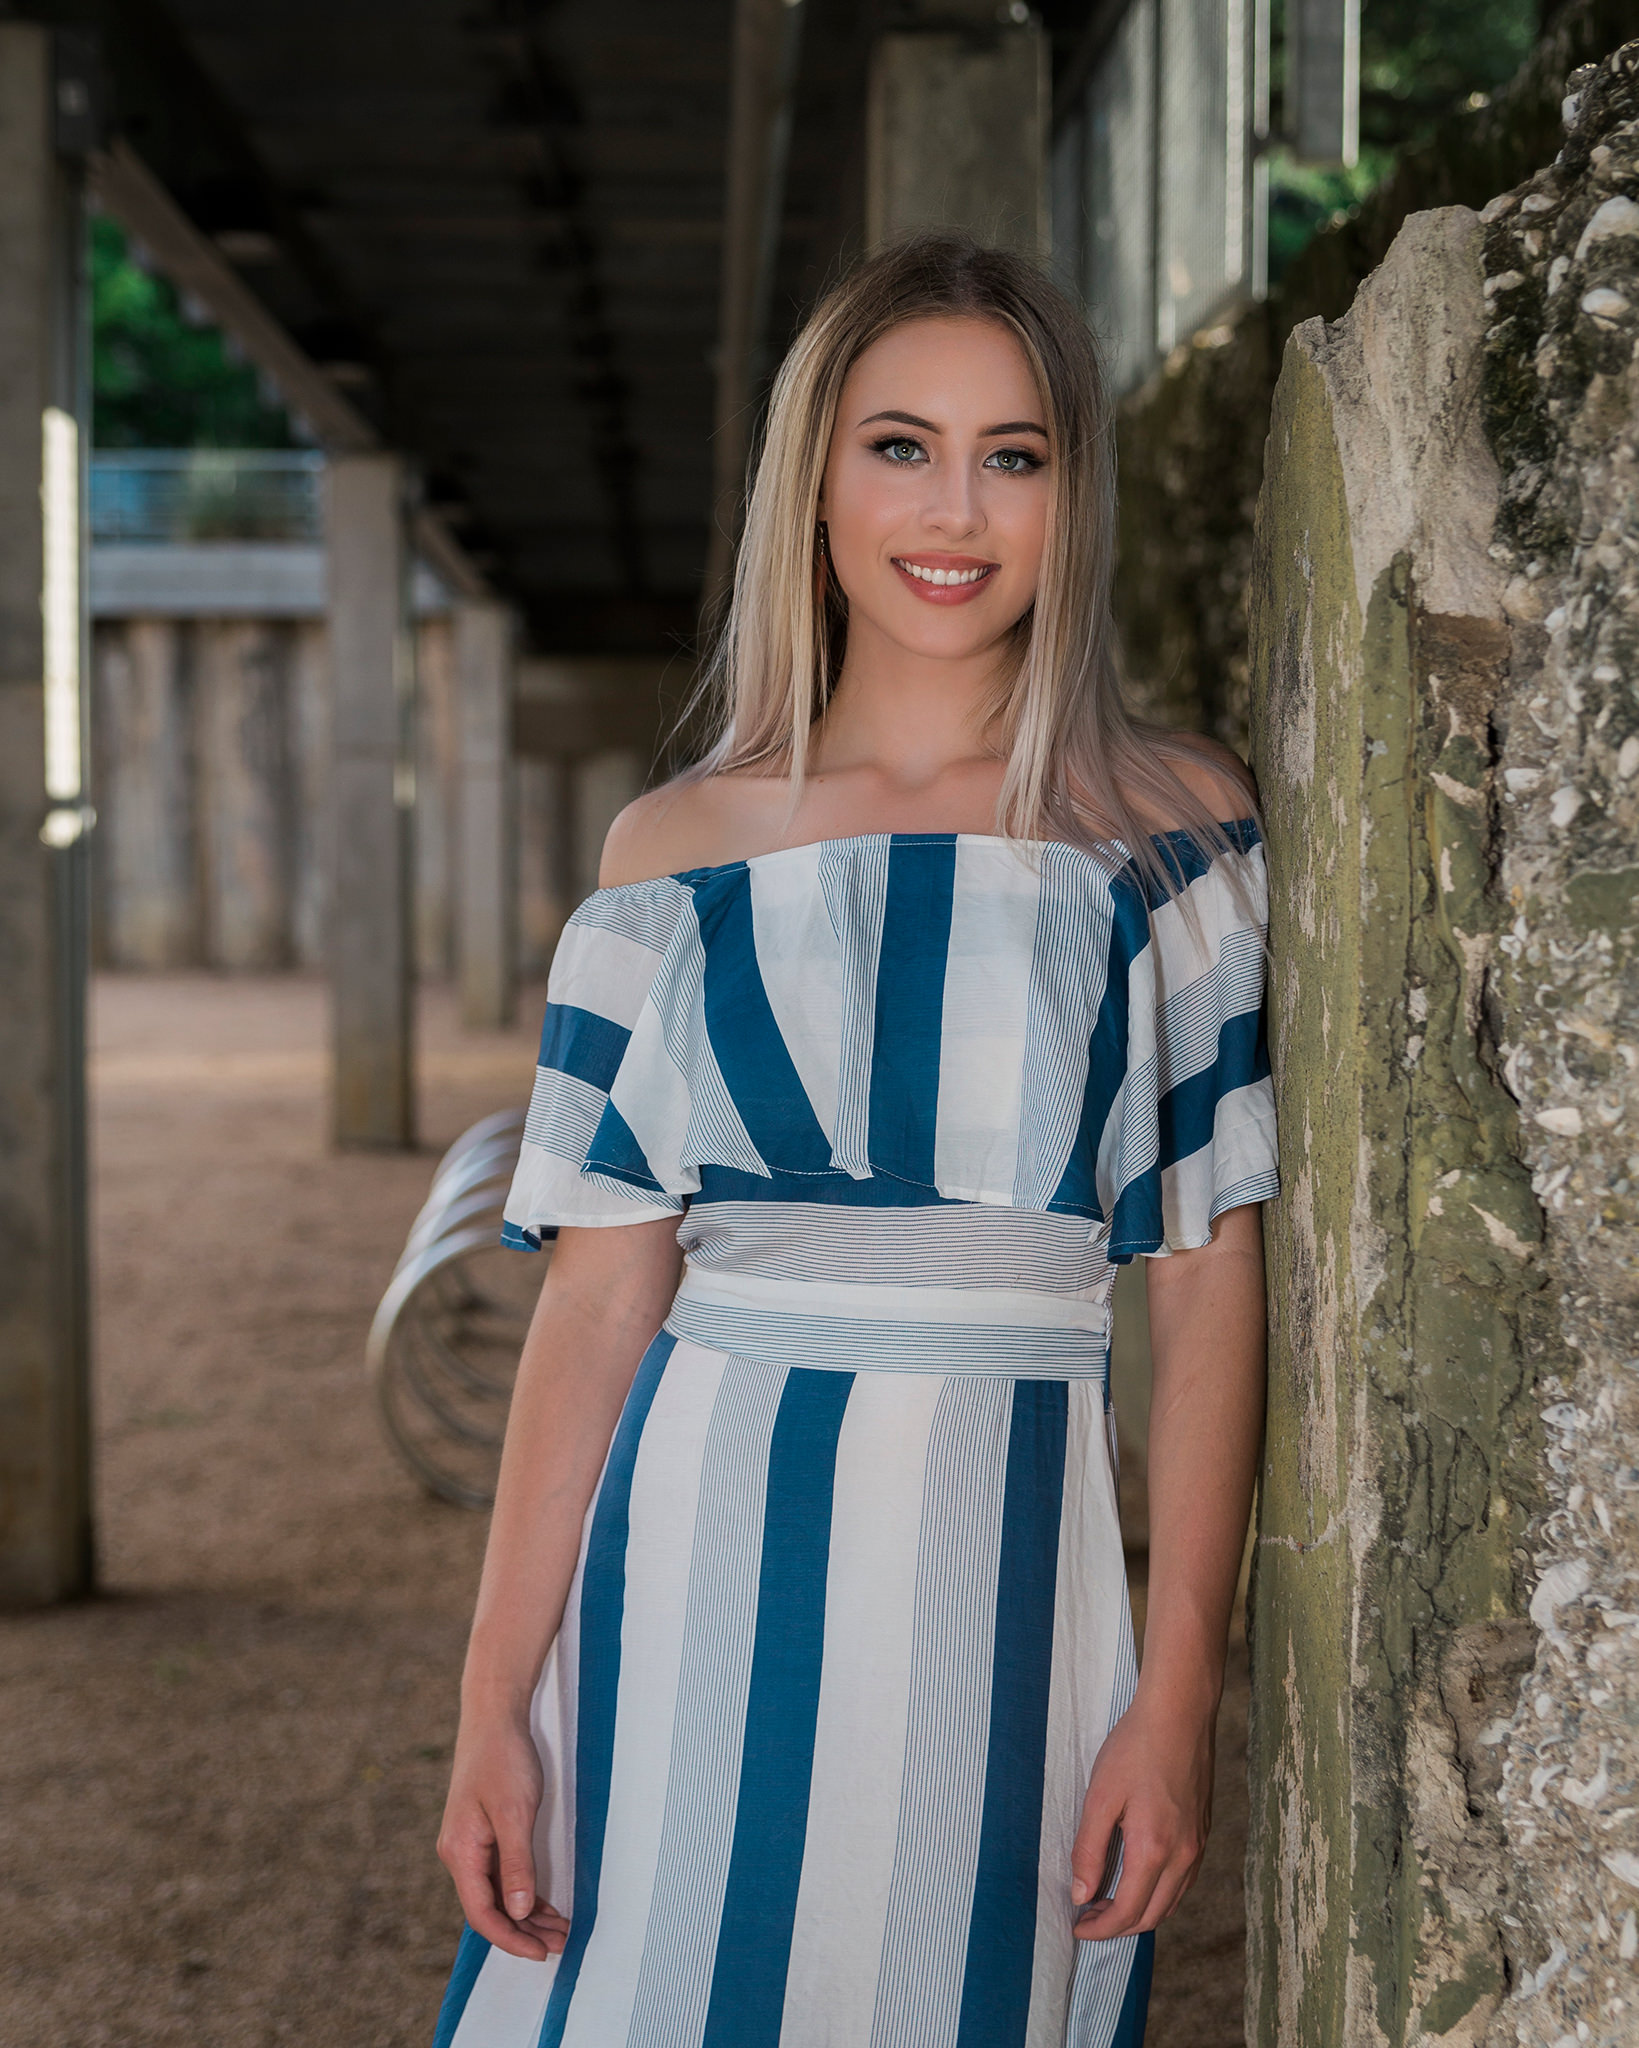 Senior girl against wall with white and blue striped dress